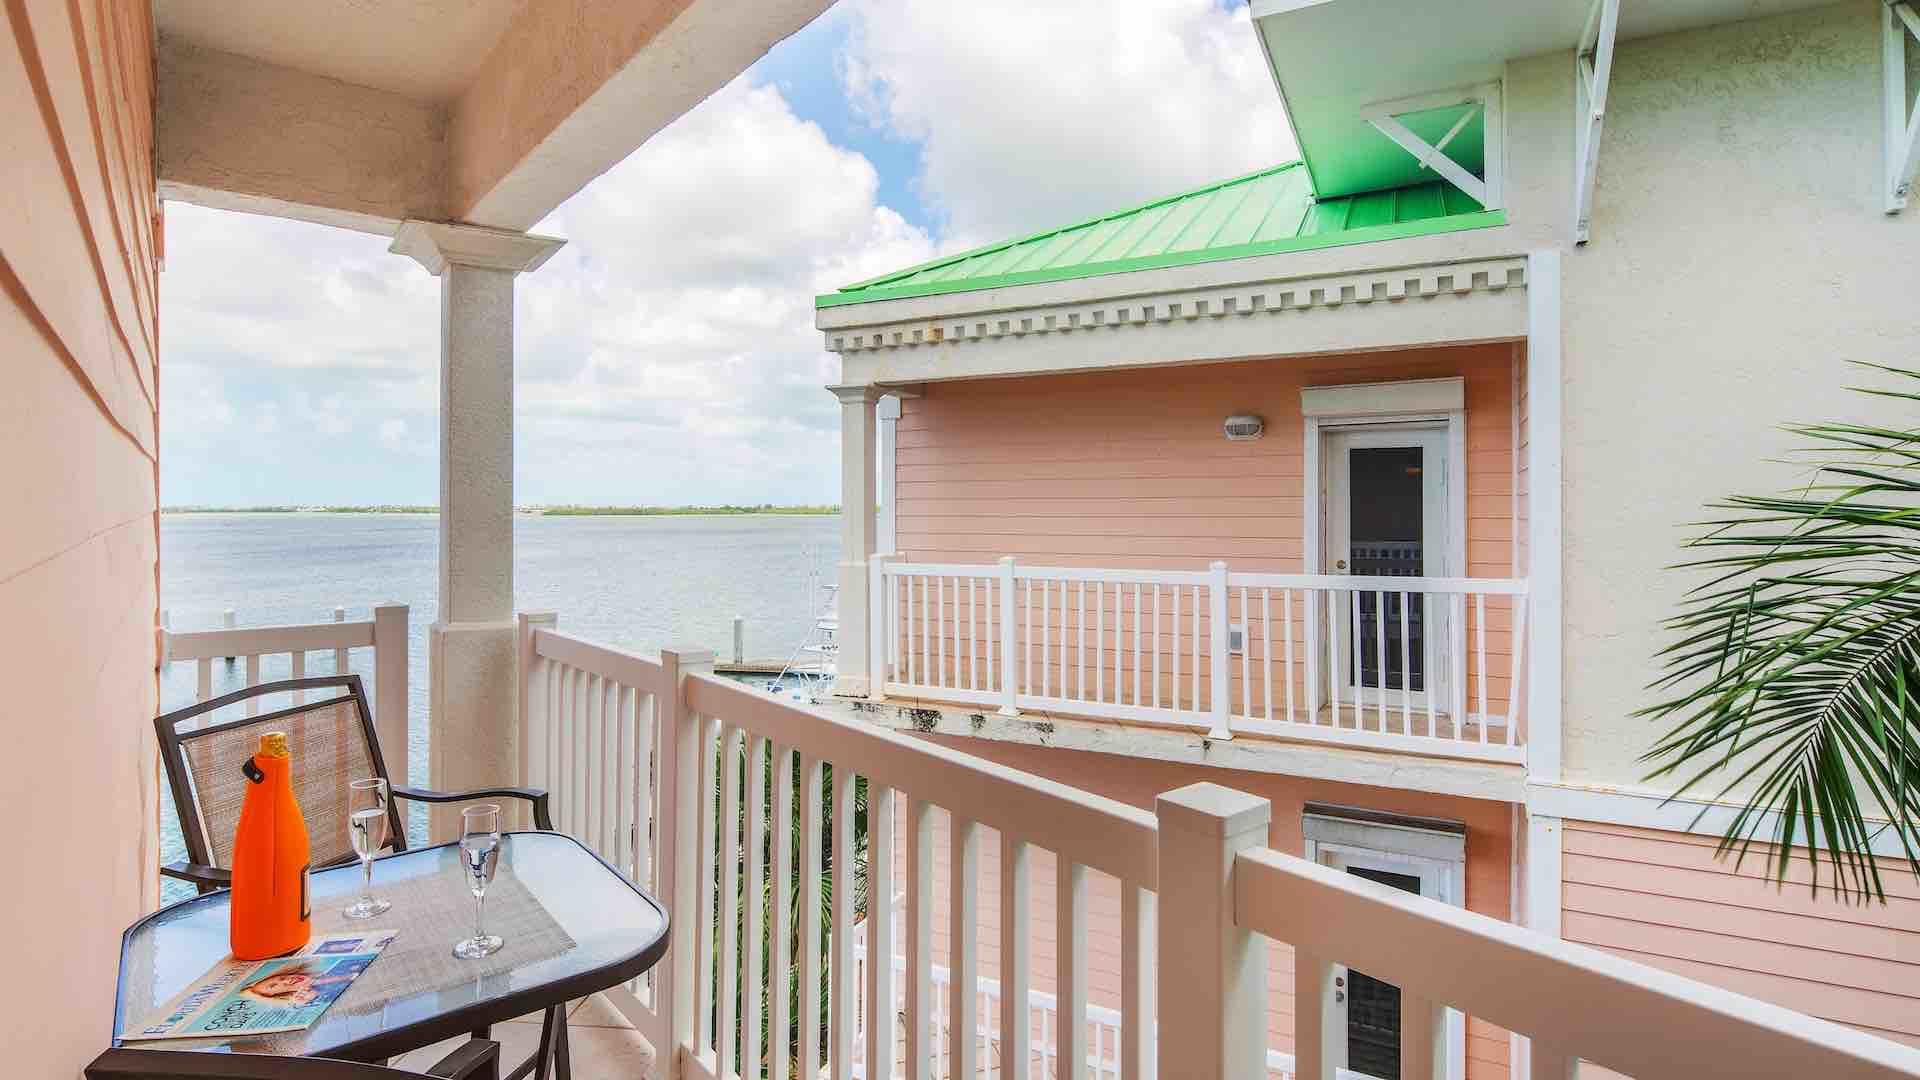 The master balcony has a 3 piece bistro set for relaxing outdoors...